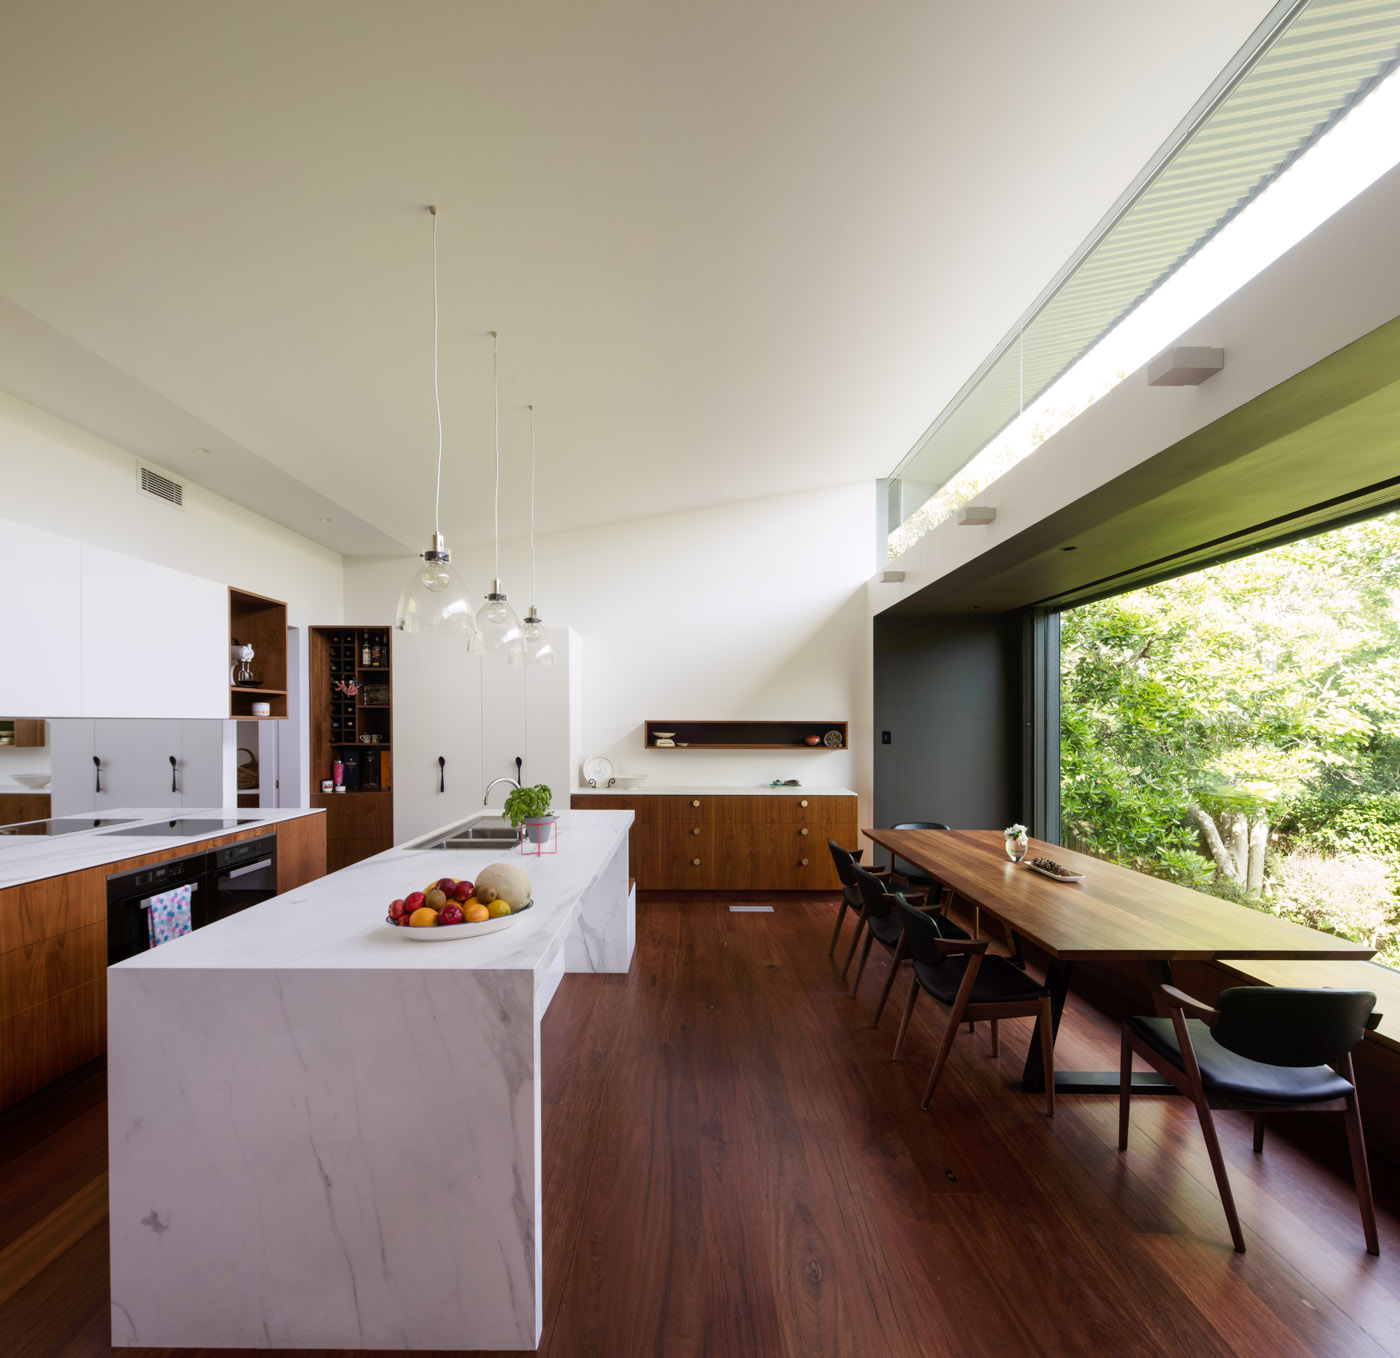 Roseville House by Sydney residential architects Sam Crawford Architects. This modern addition is open plan, here showing the light filled kitchen living areas.